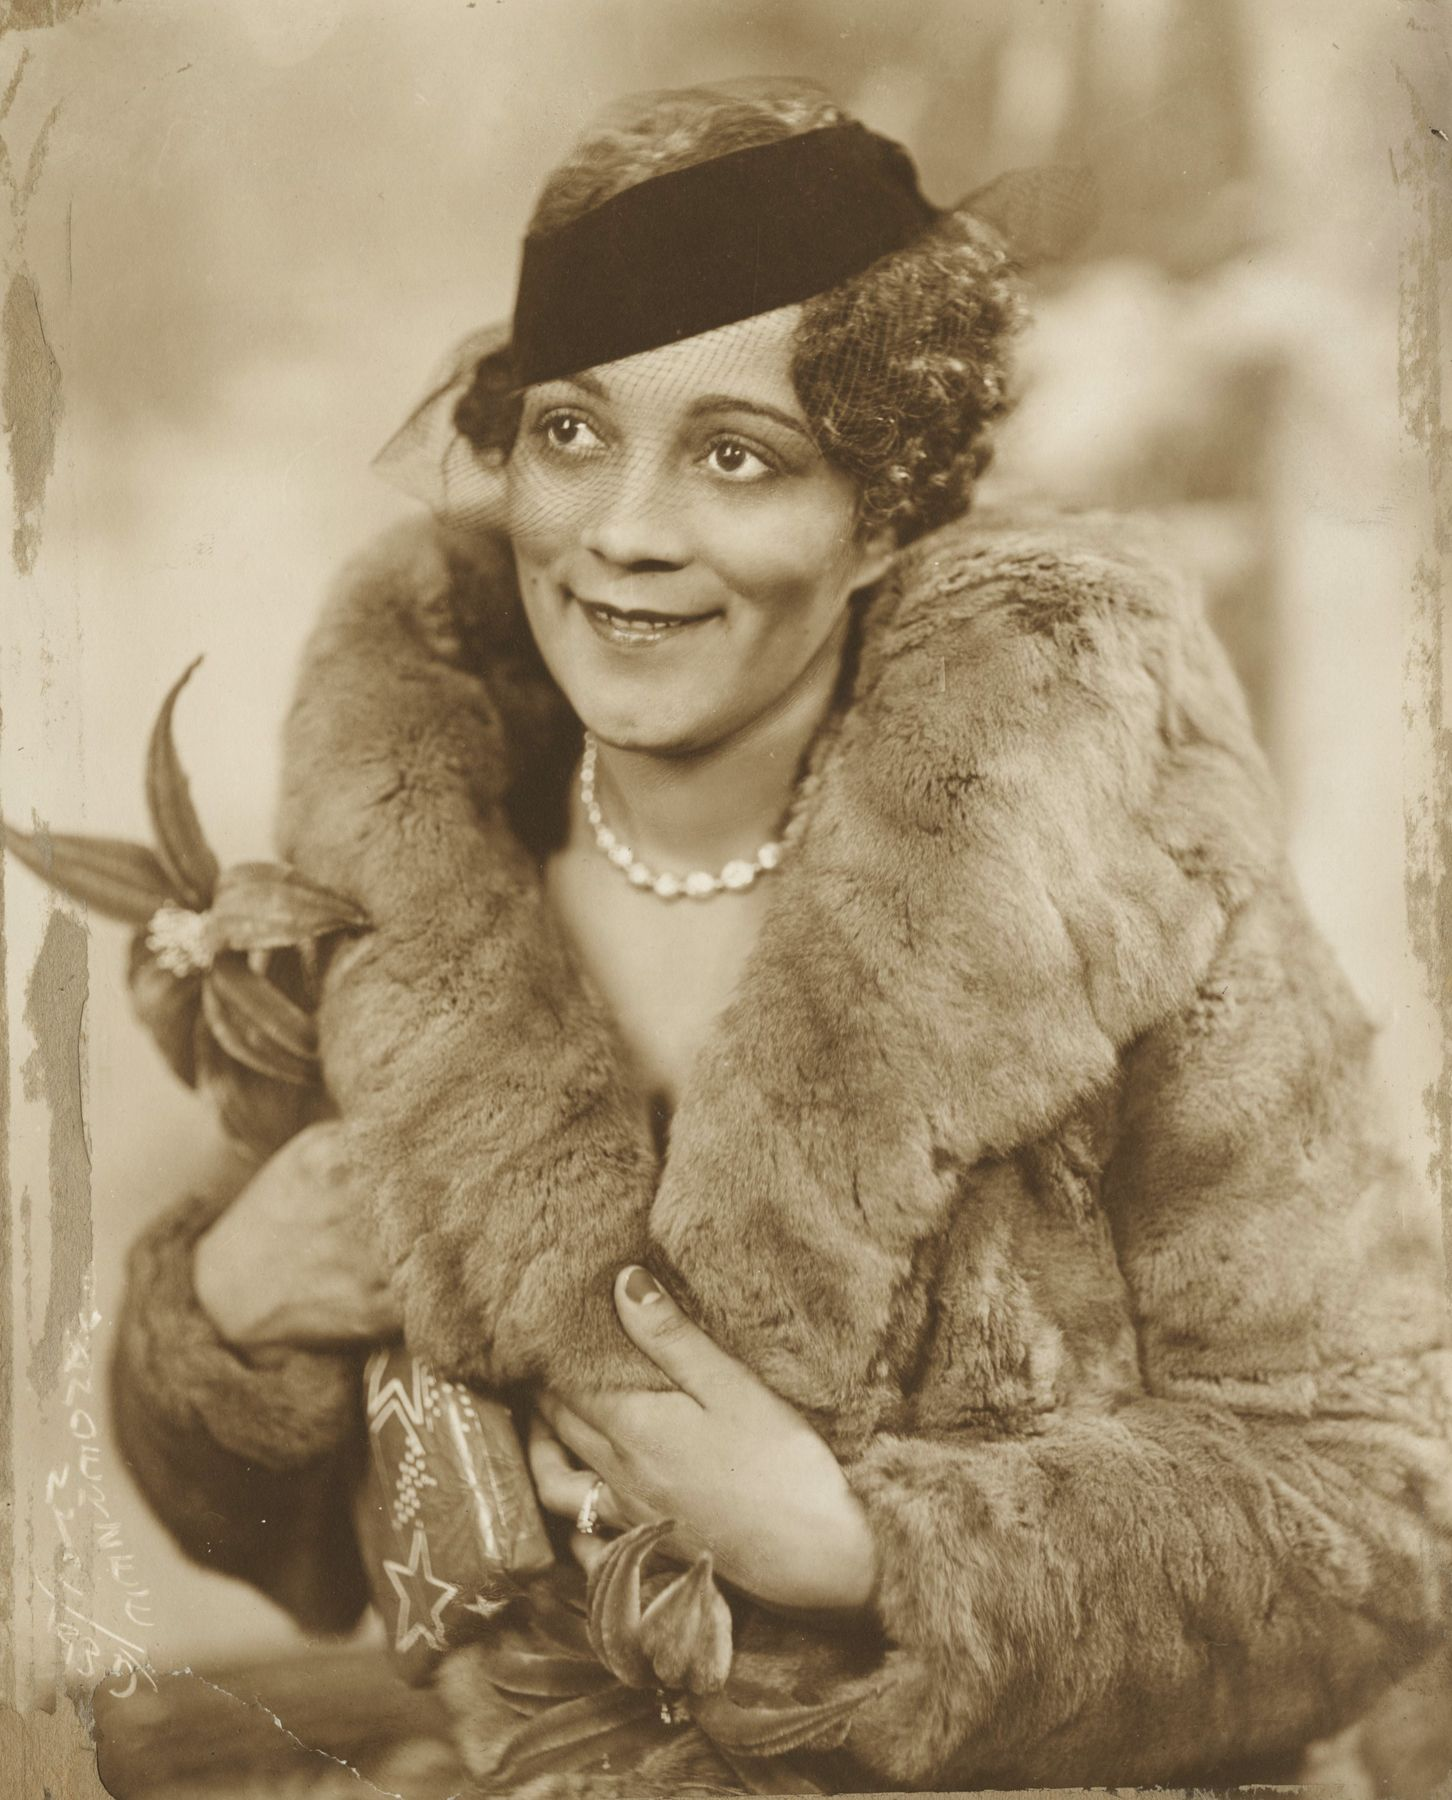 James Van Der Zee - Lady with Fur Jacket, 1935 - Howard Greenberg Gallery